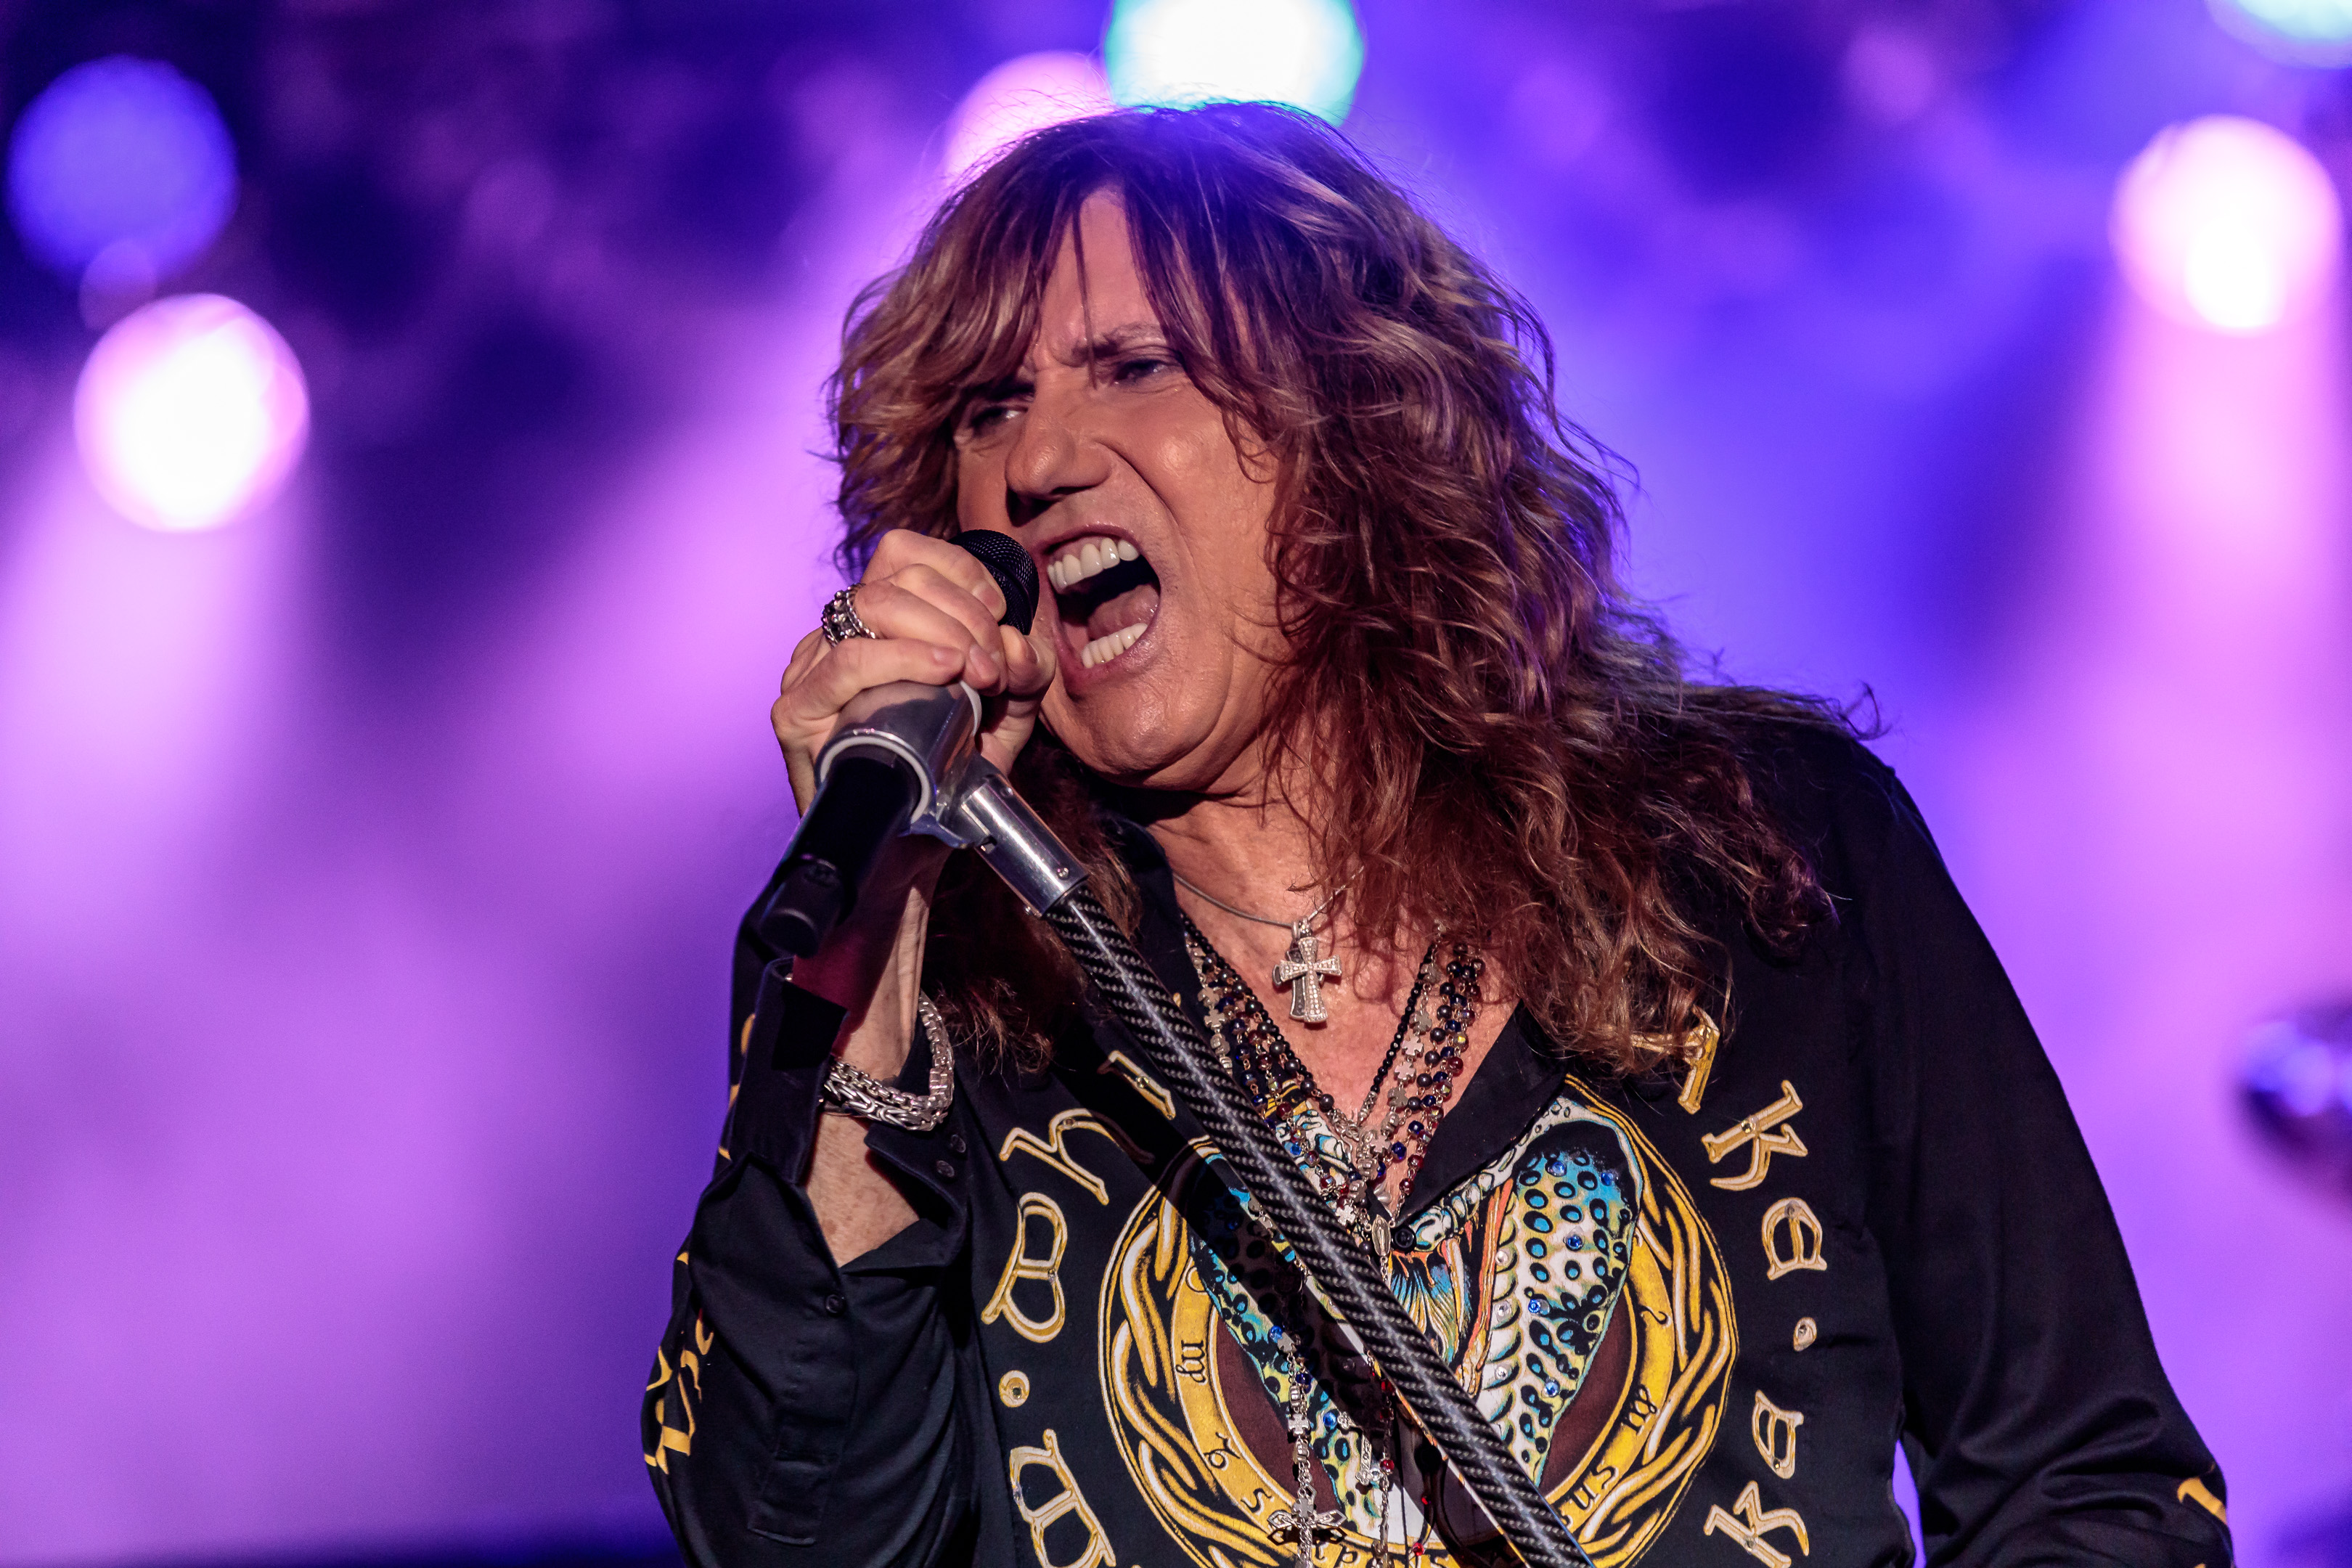 Whitesnake Rocks Crowd at Talking Stick Resort | Beneath a ...